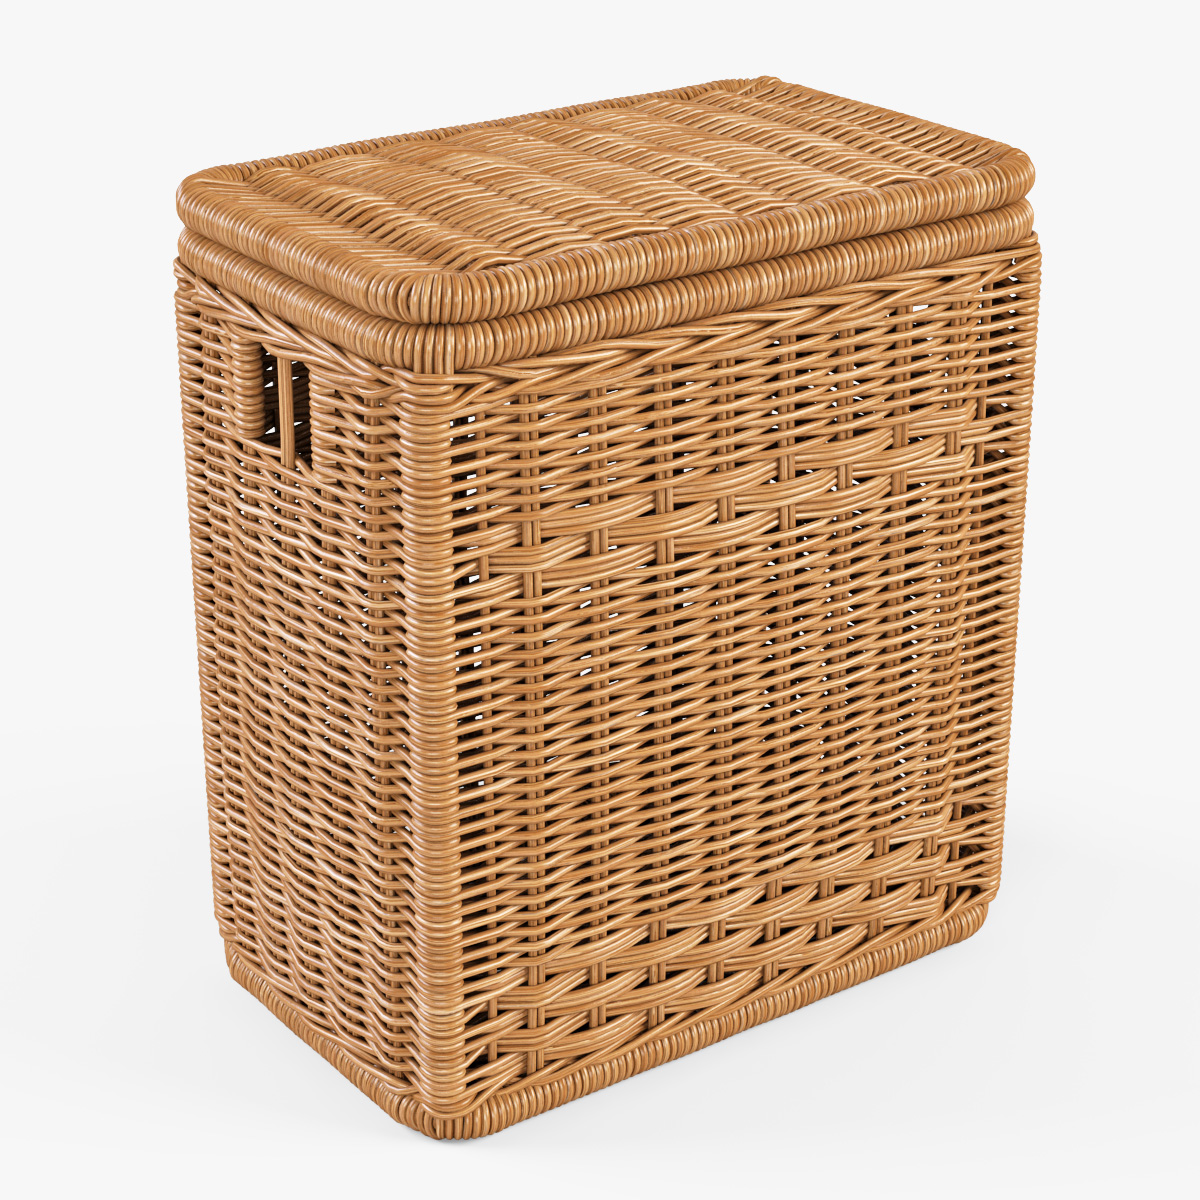 Wicker laundry hamper 08 natural color by markelos 3docean - Cane laundry hamper ...